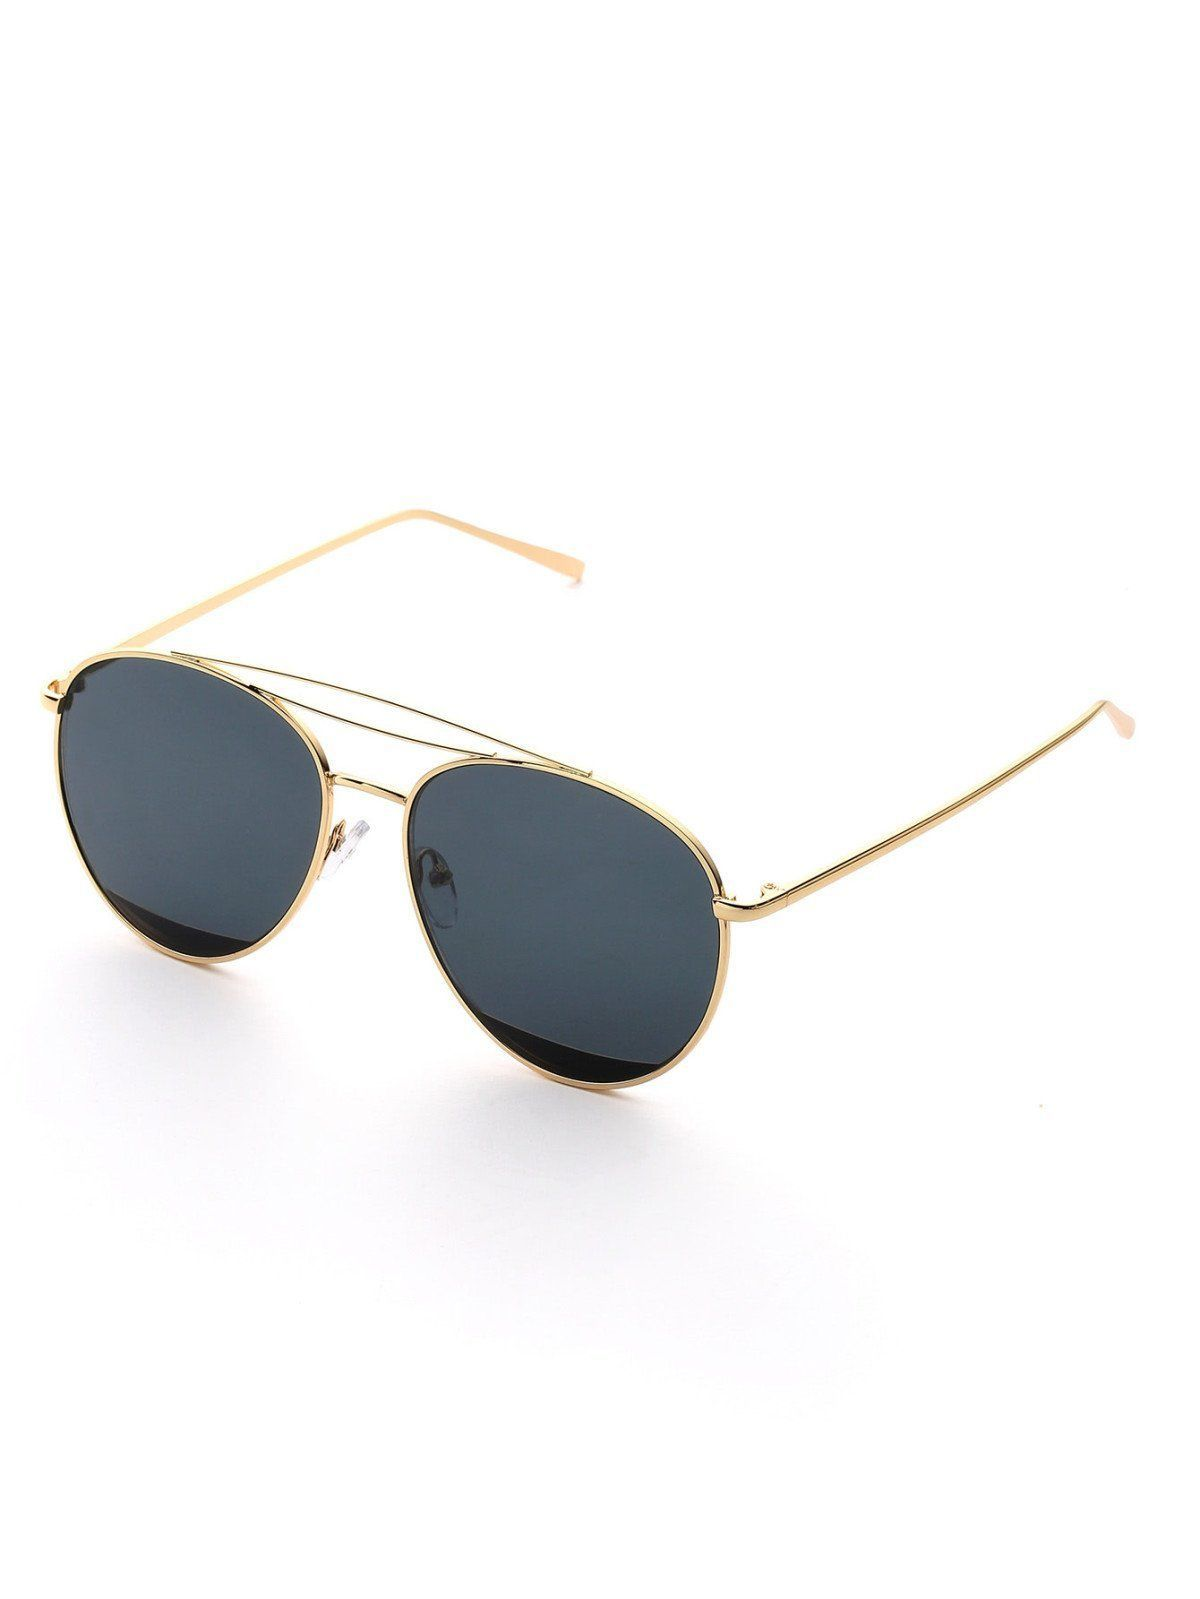 370830a1107 SheIn offers Contrast Frame Aviator Sunglasses   more to fit your  fashionable needs.